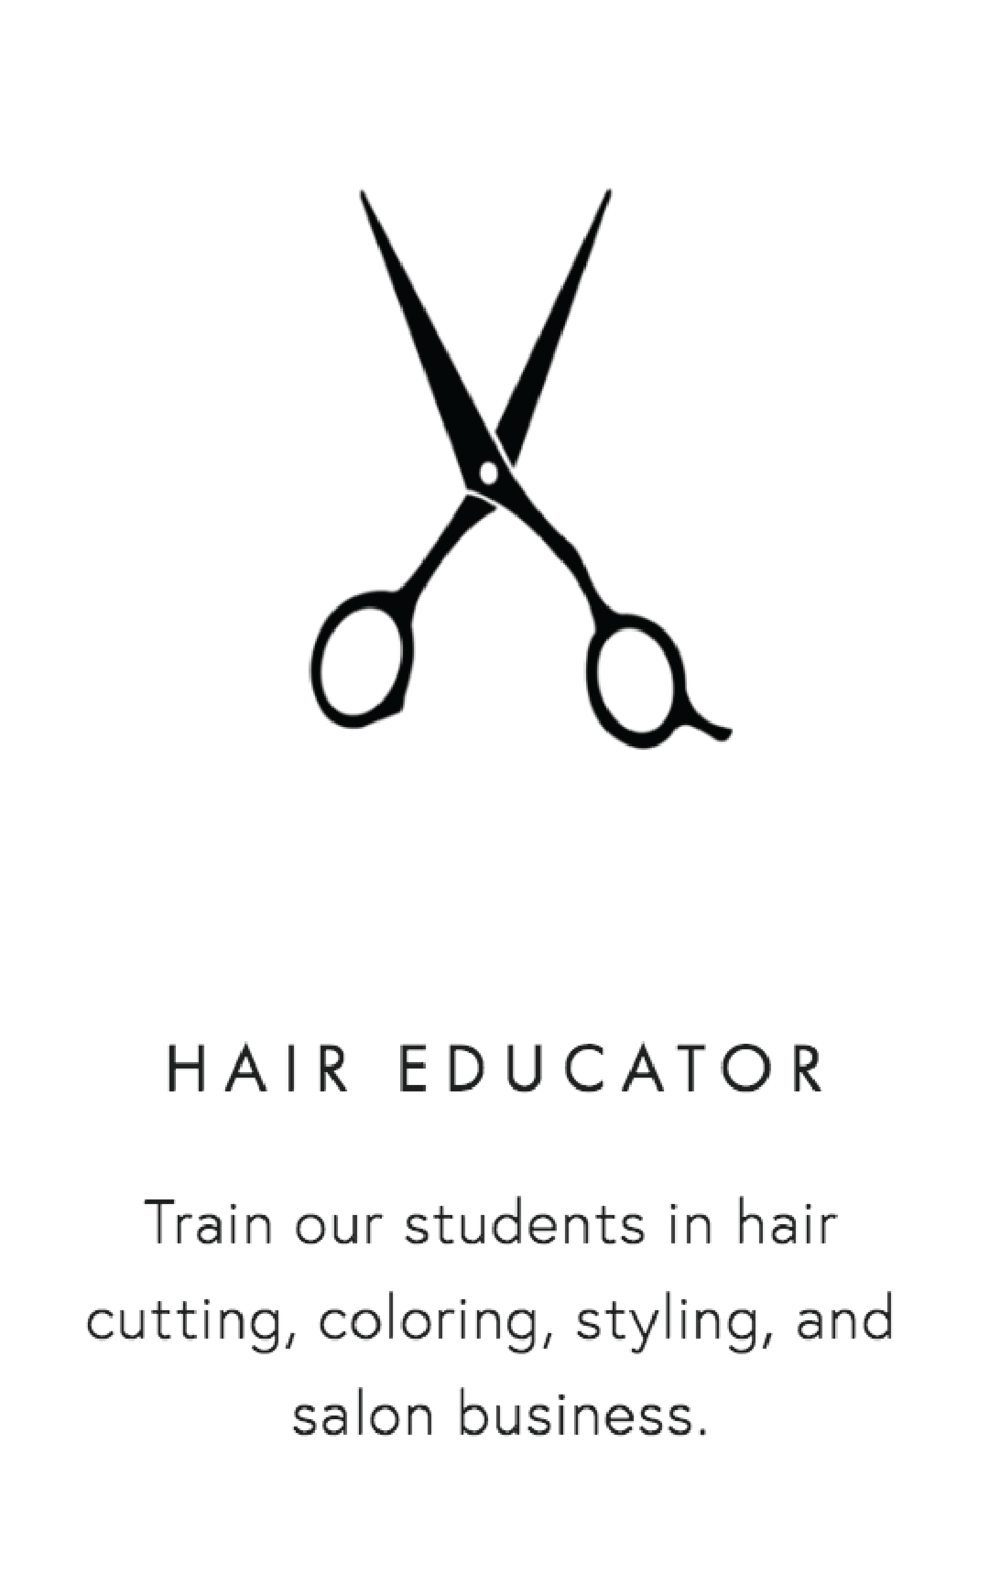 hair educator.png